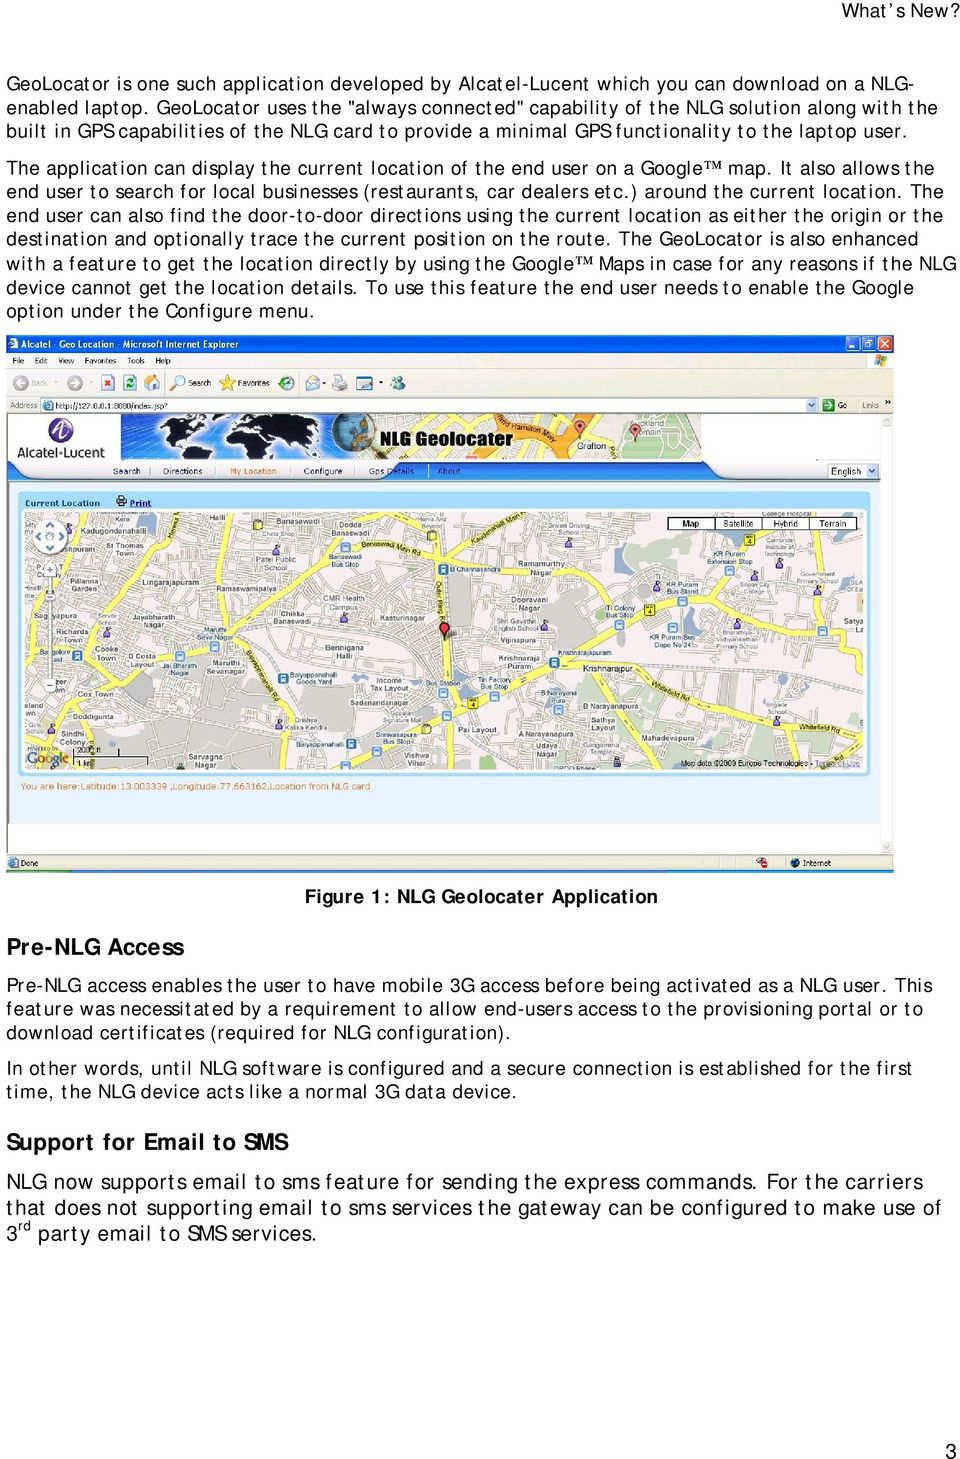 The application can display the current location of the end user on a Google map. It also allows the end user to search for local businesses (restaurants, car dealers etc.